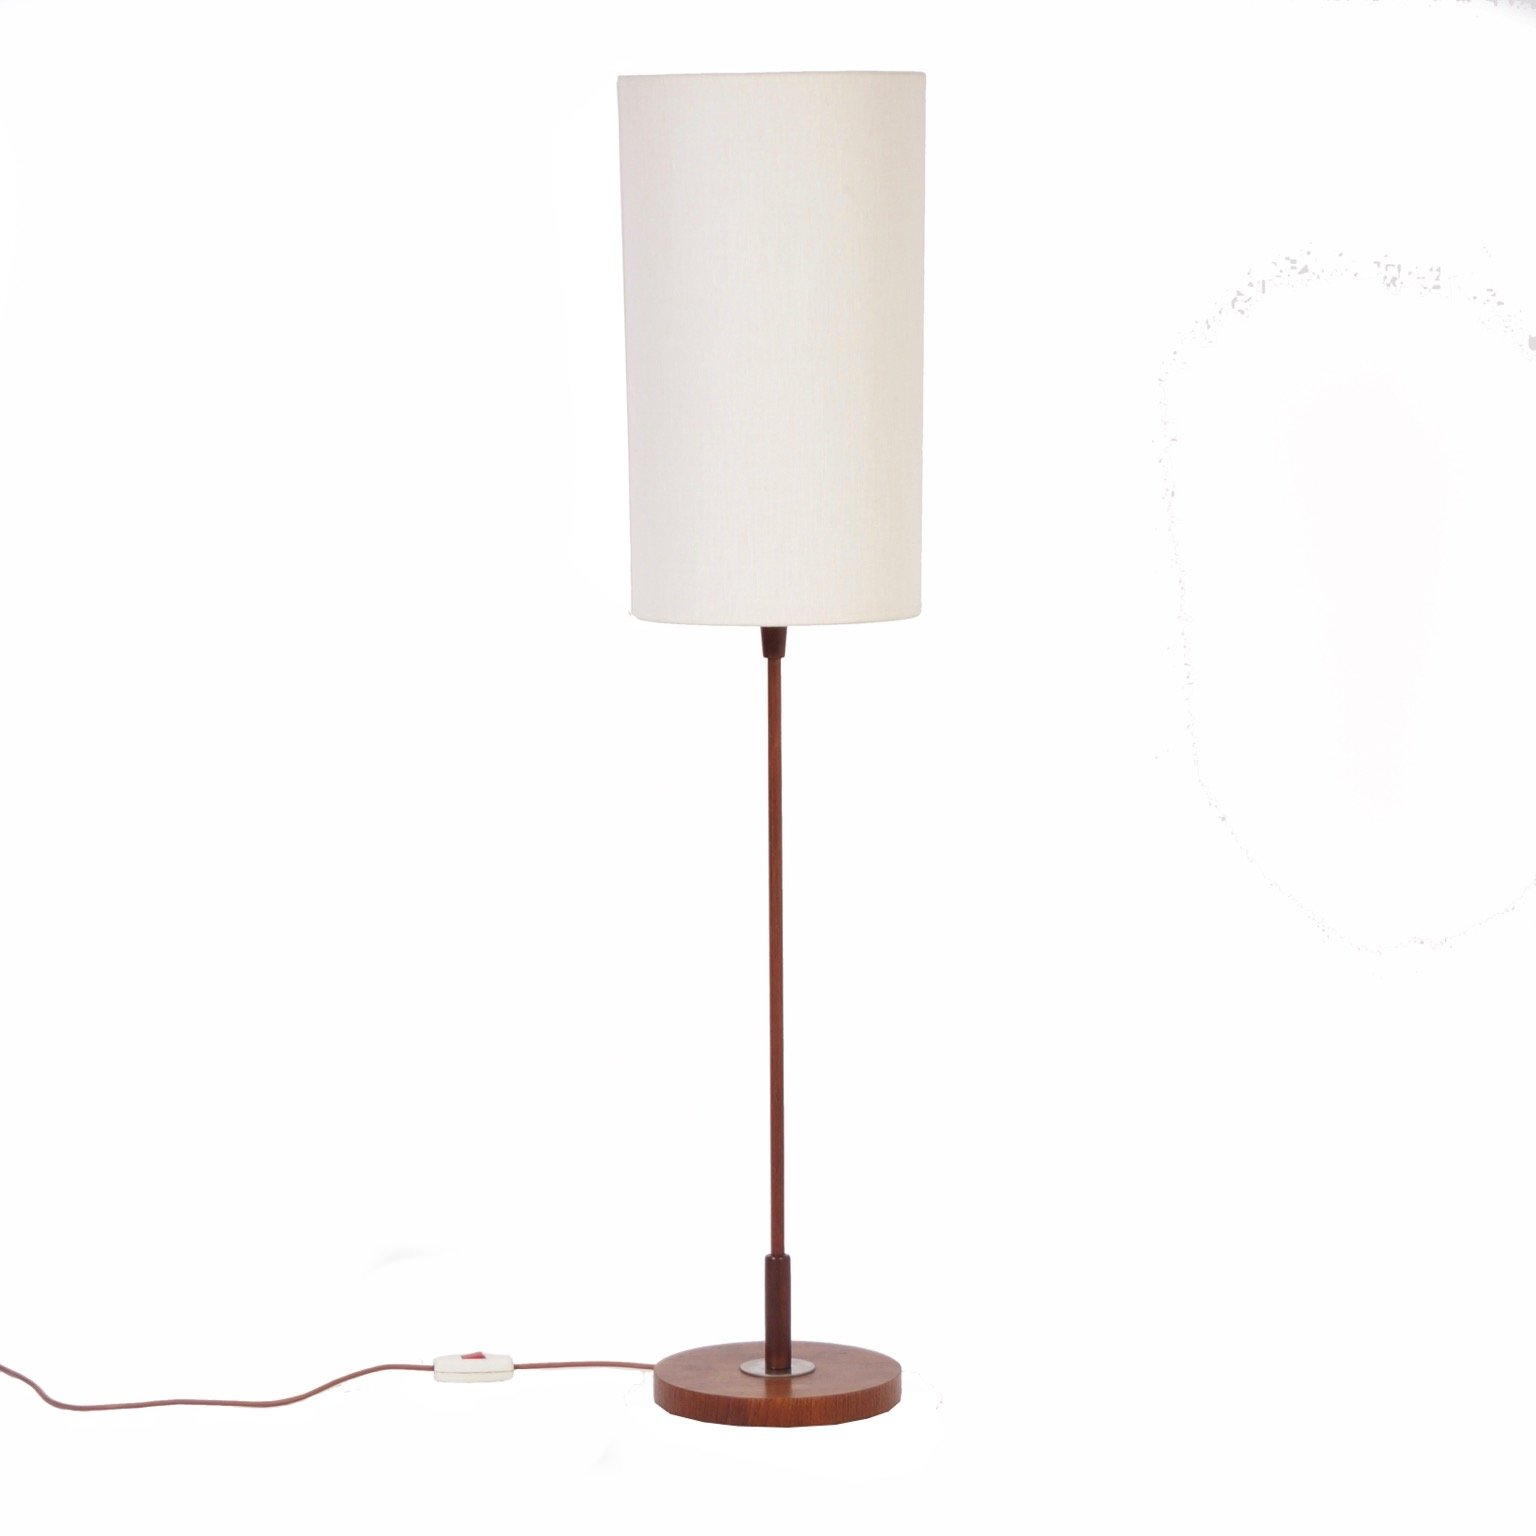 Vintage floor lamp with cylindrical shade teak base for Giant retro floor lamp the range